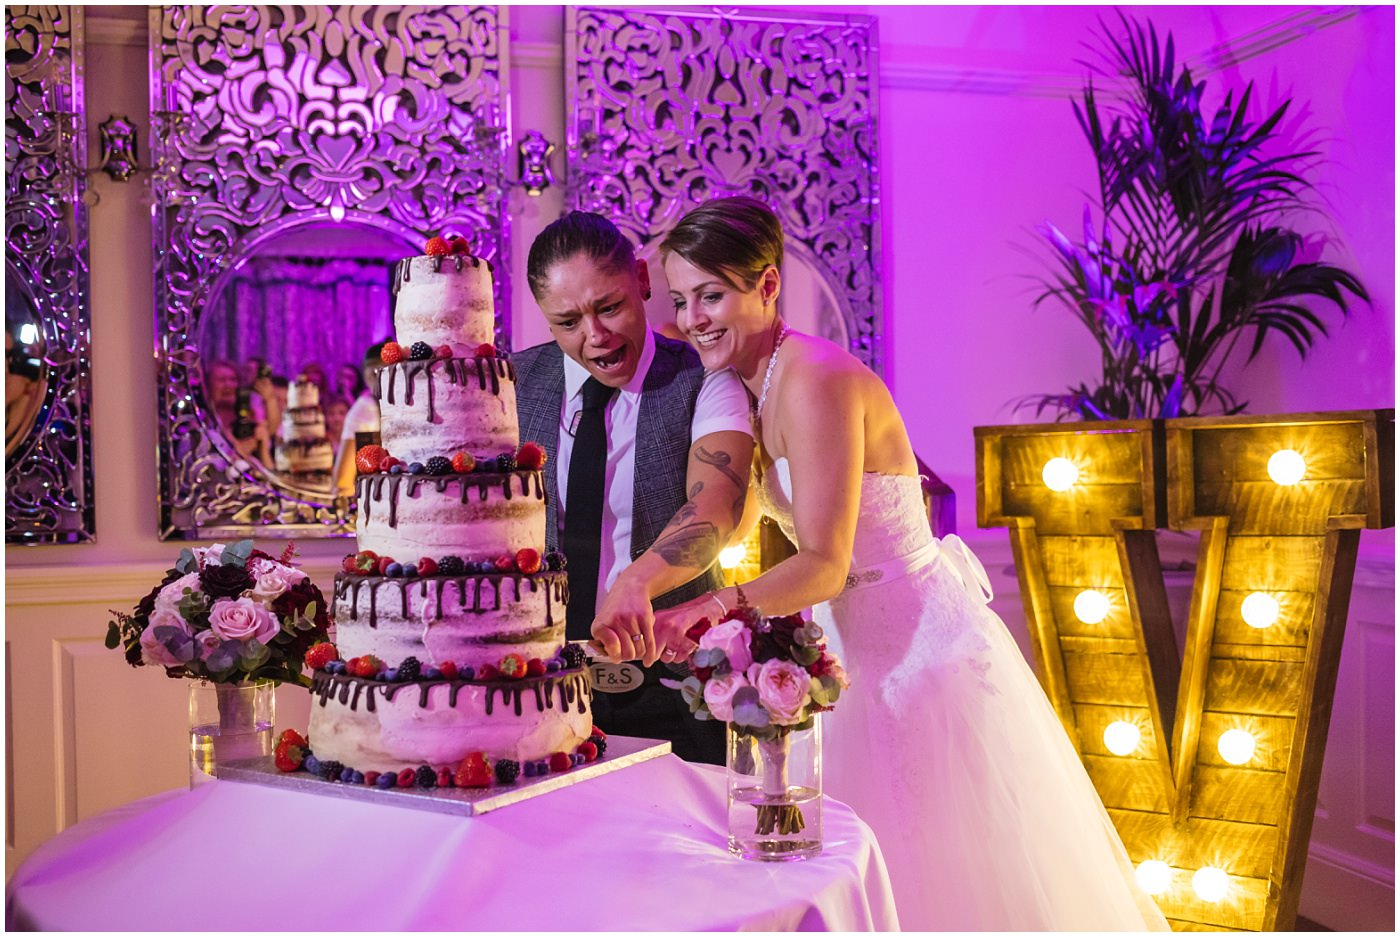 Wedding cake cut at eaves hall